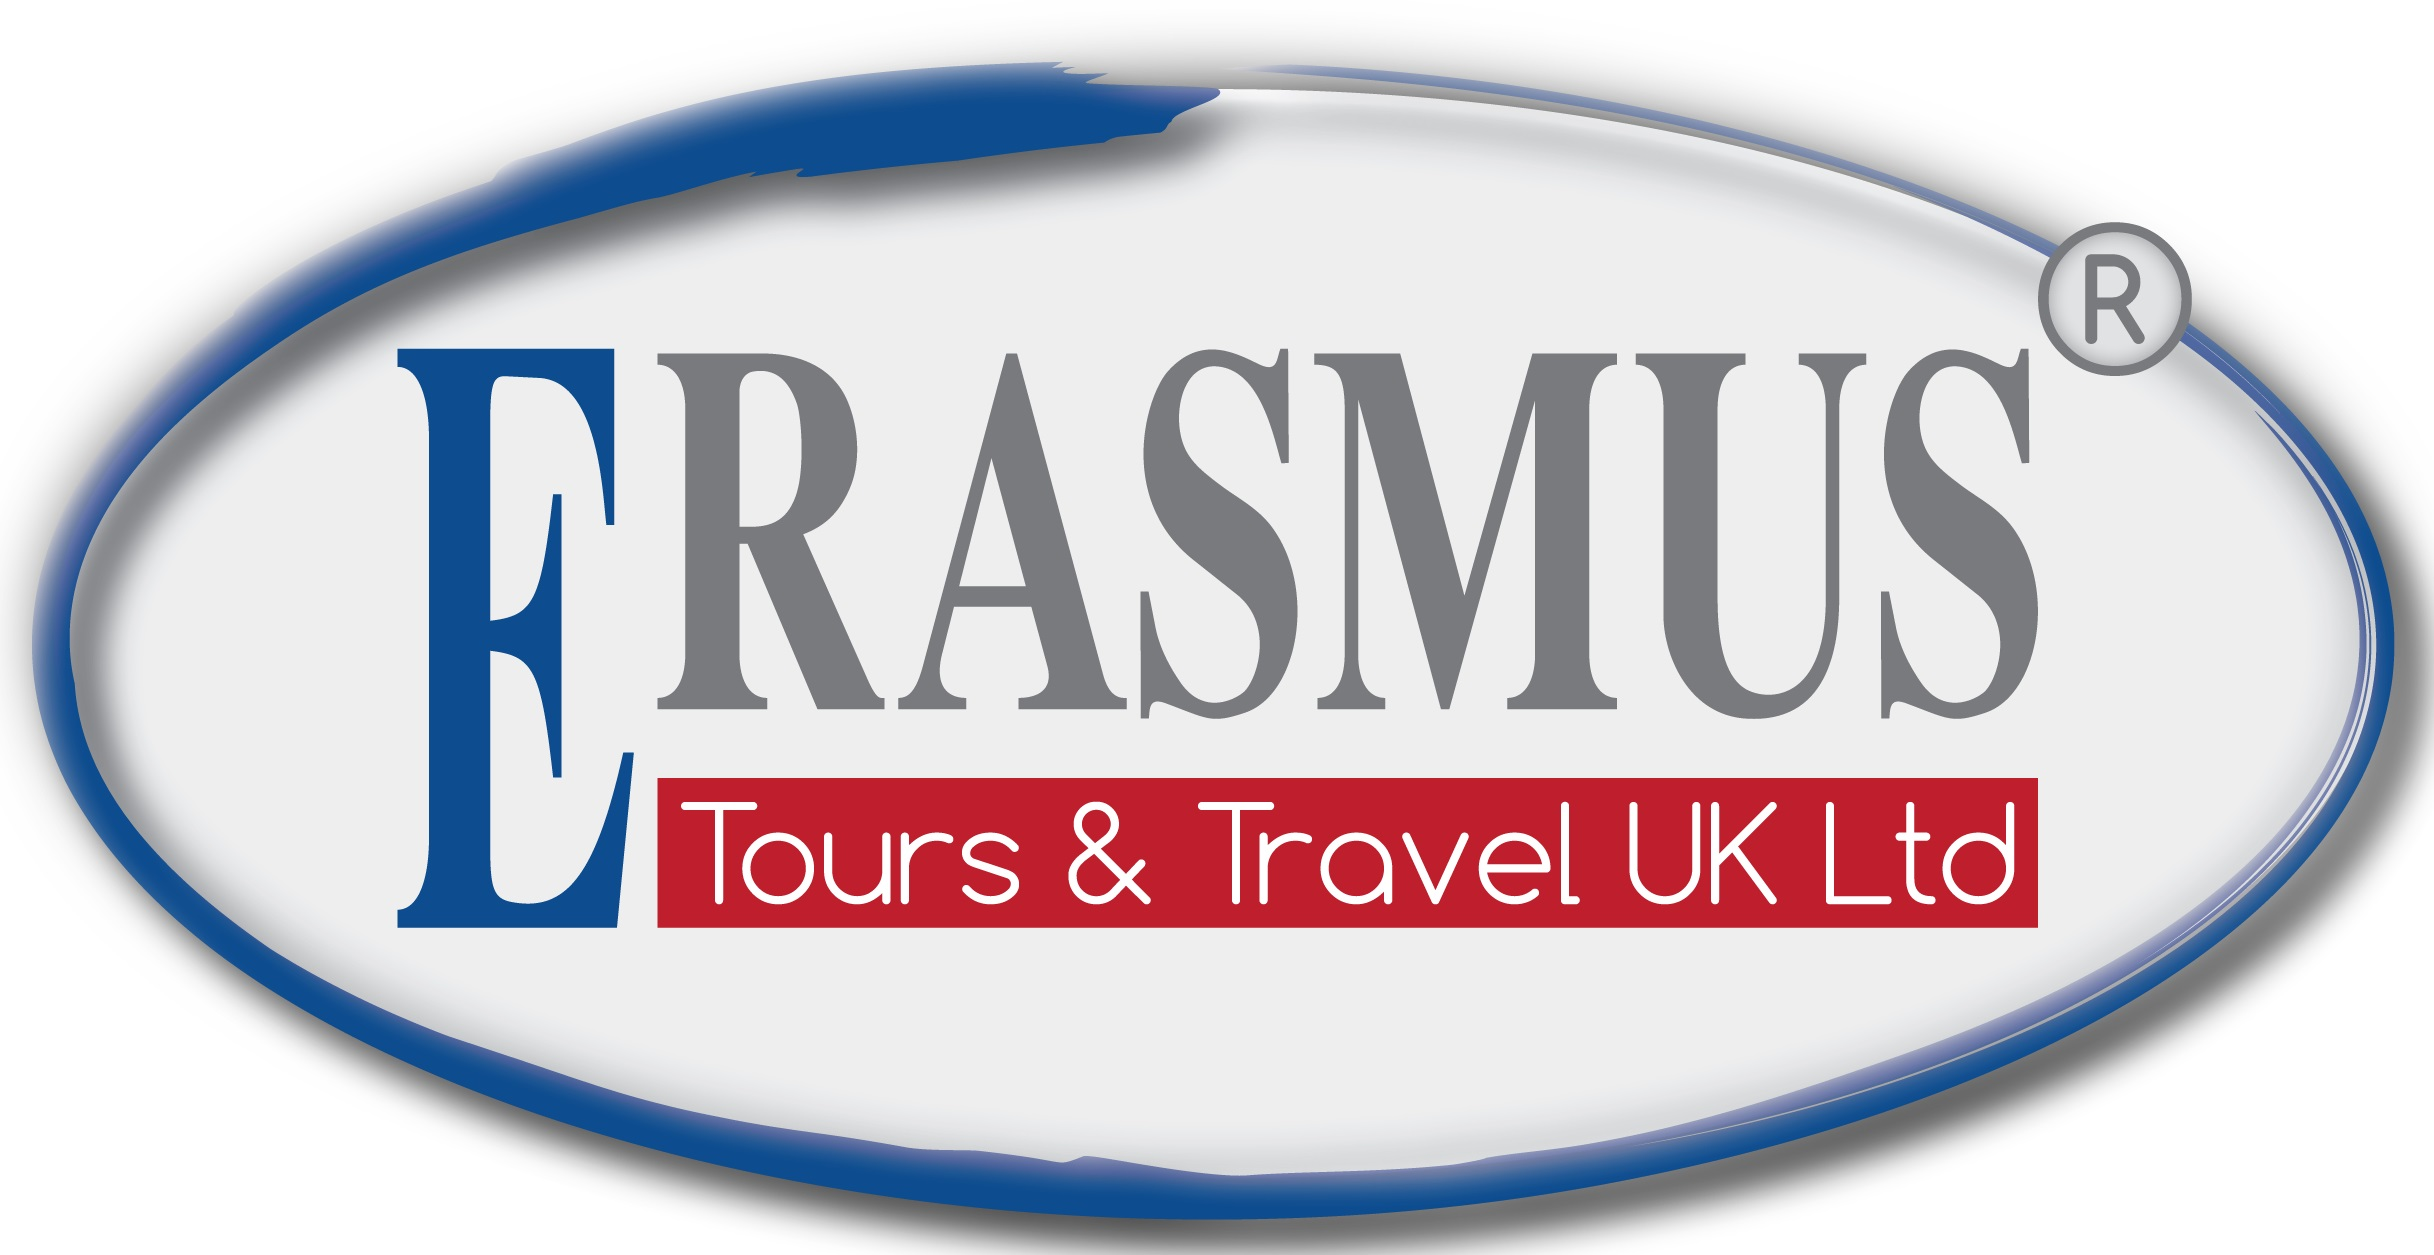 Erasmus Tours & Travel UK Limited